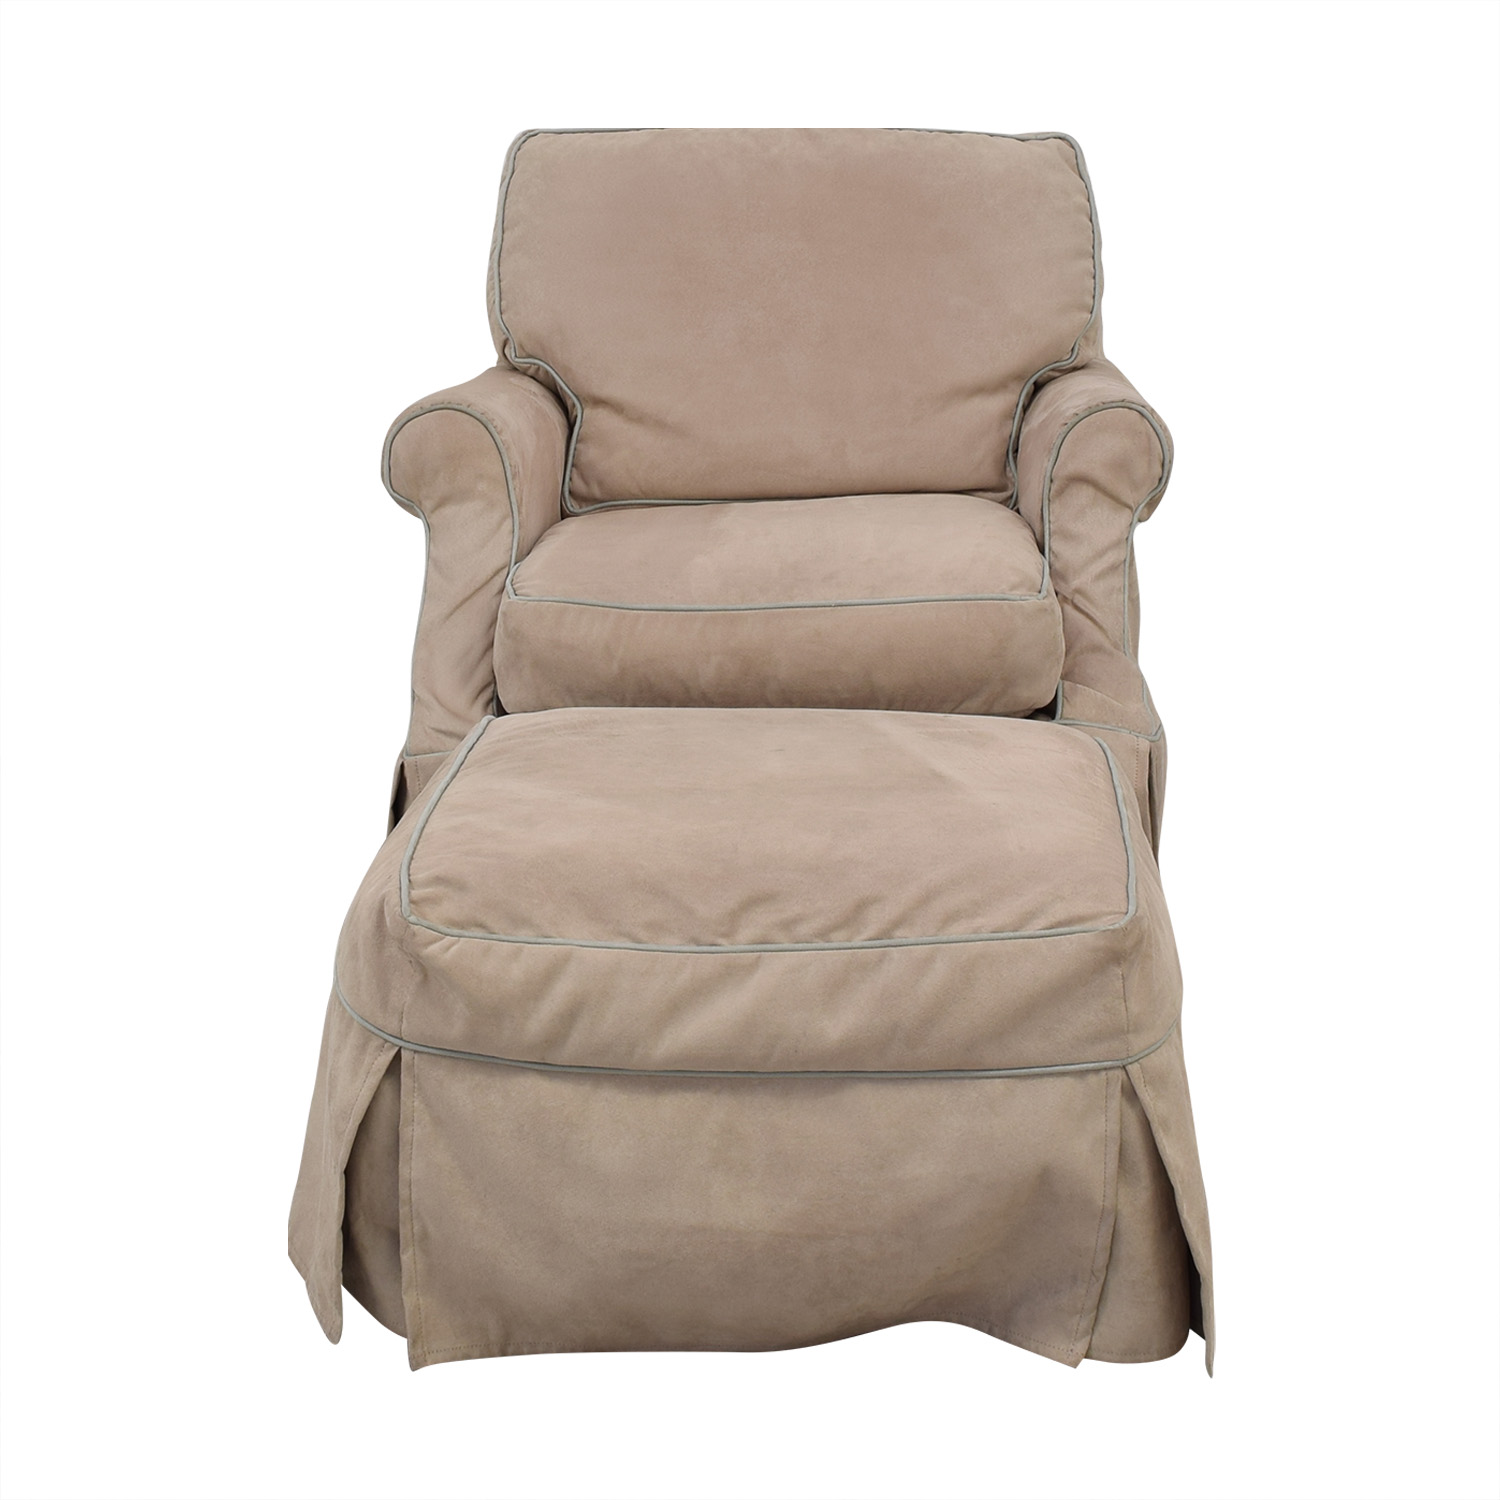 shop Robin Bruce Beatrix Slipcover Chair with Ottoman Robin Bruce Loveseats